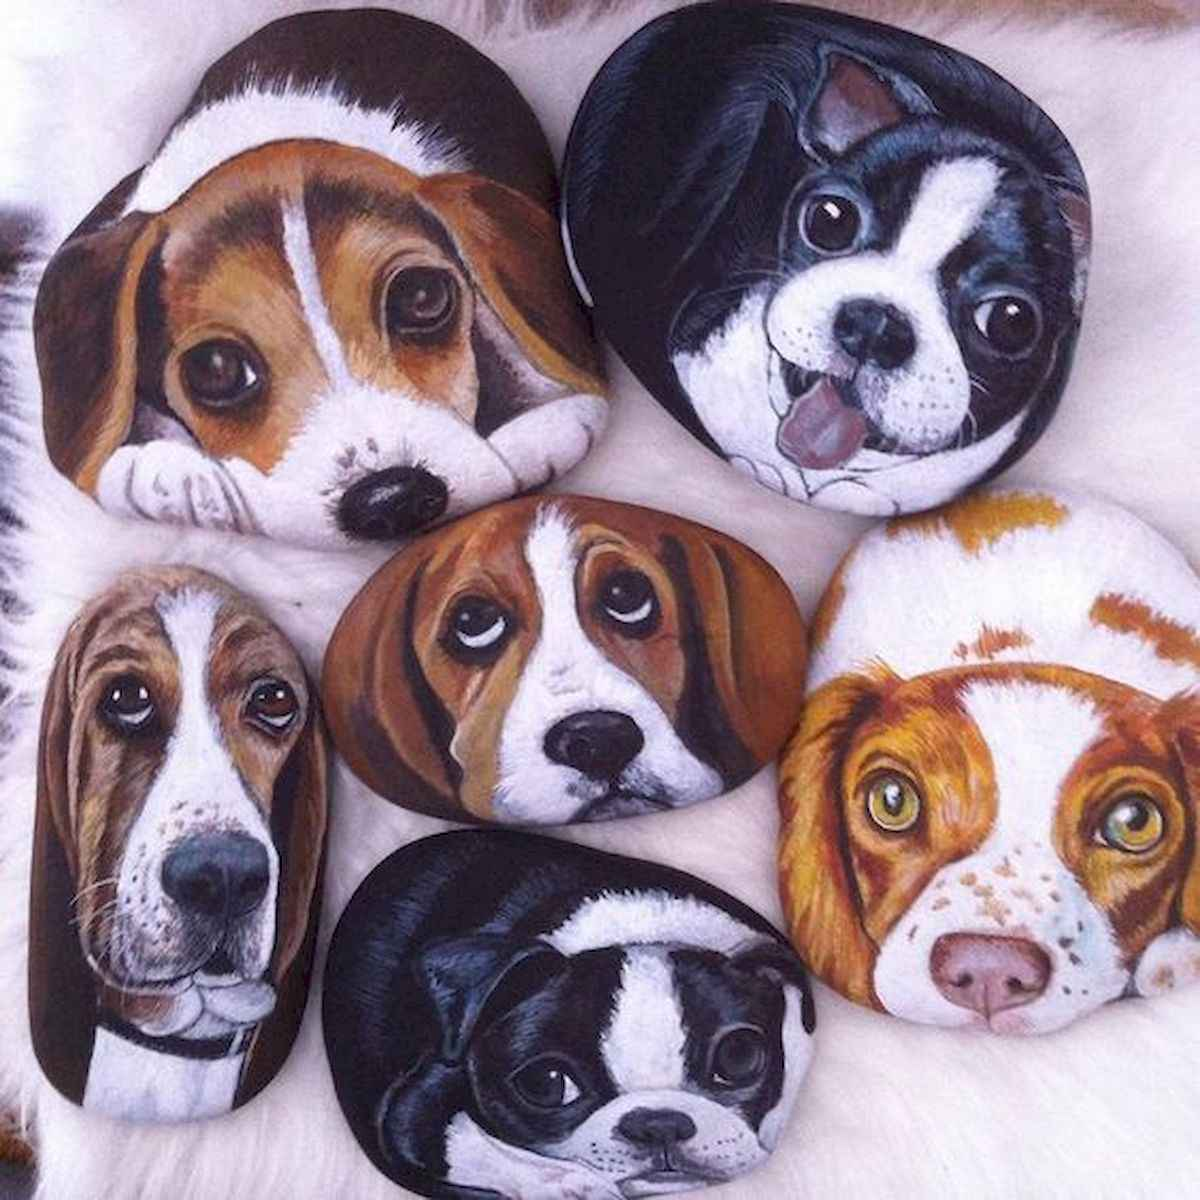 40 Awesome DIY Projects Painted Rocks Animals Dogs for Summer Ideas (26)